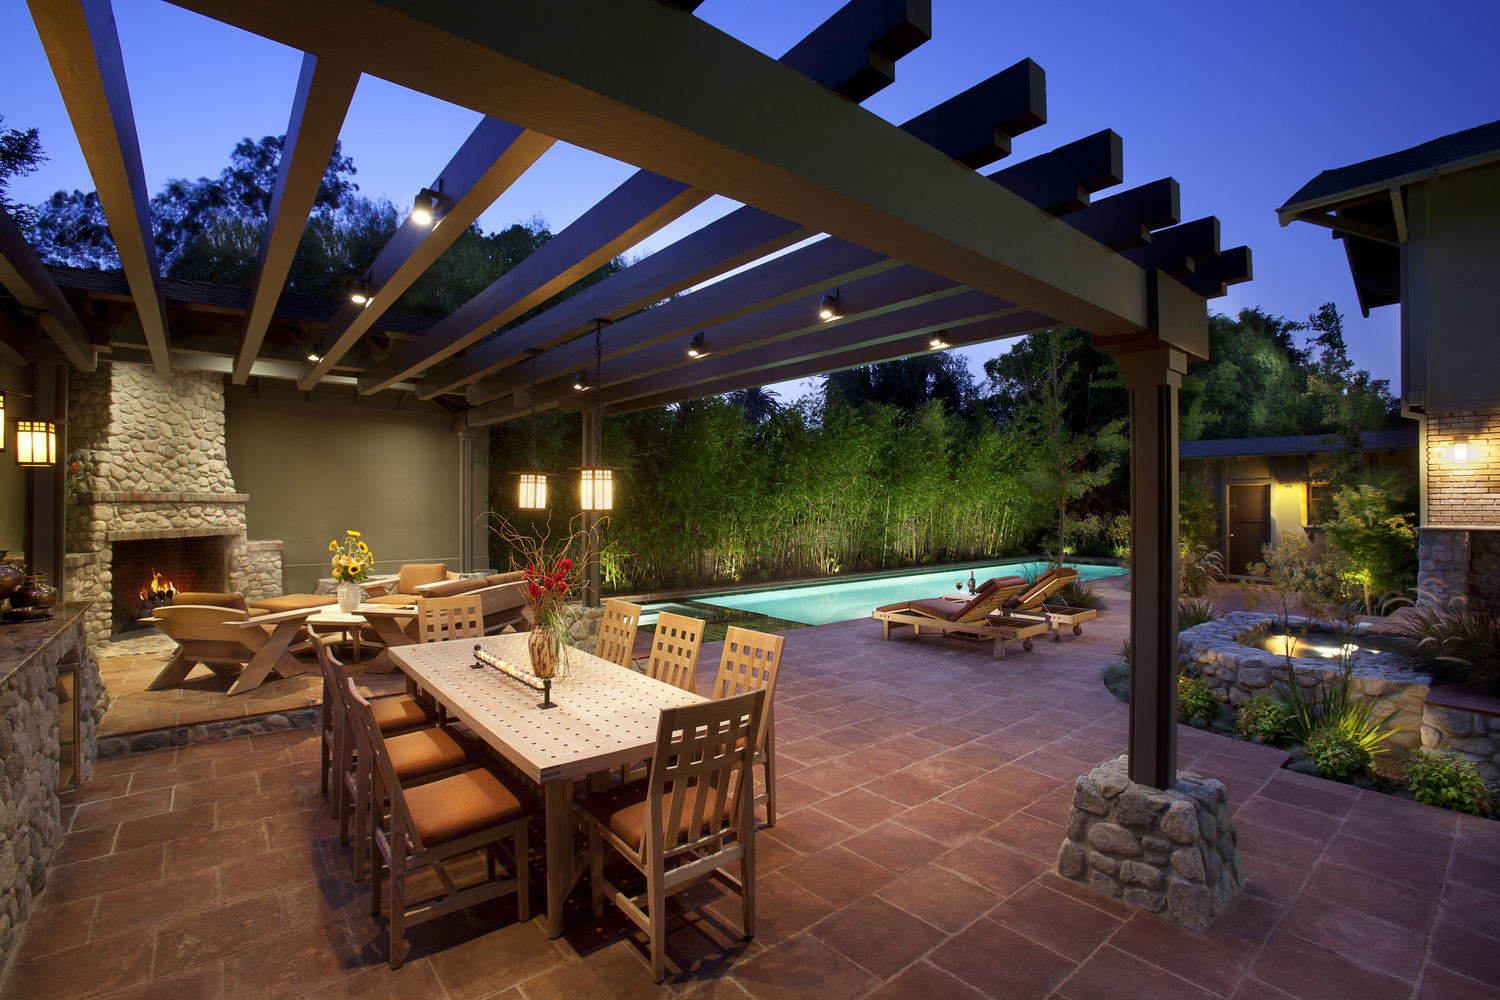 28 gazebo lighting ideas and projects for your backyard for Outdoor pool backyard